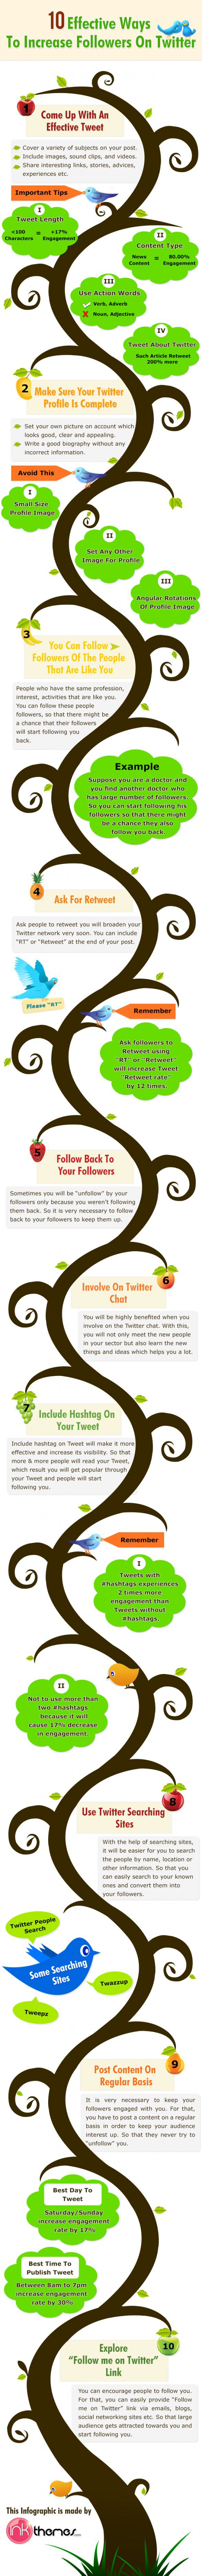 Twitter: 10 astuces pour augmenter son nombre de followers